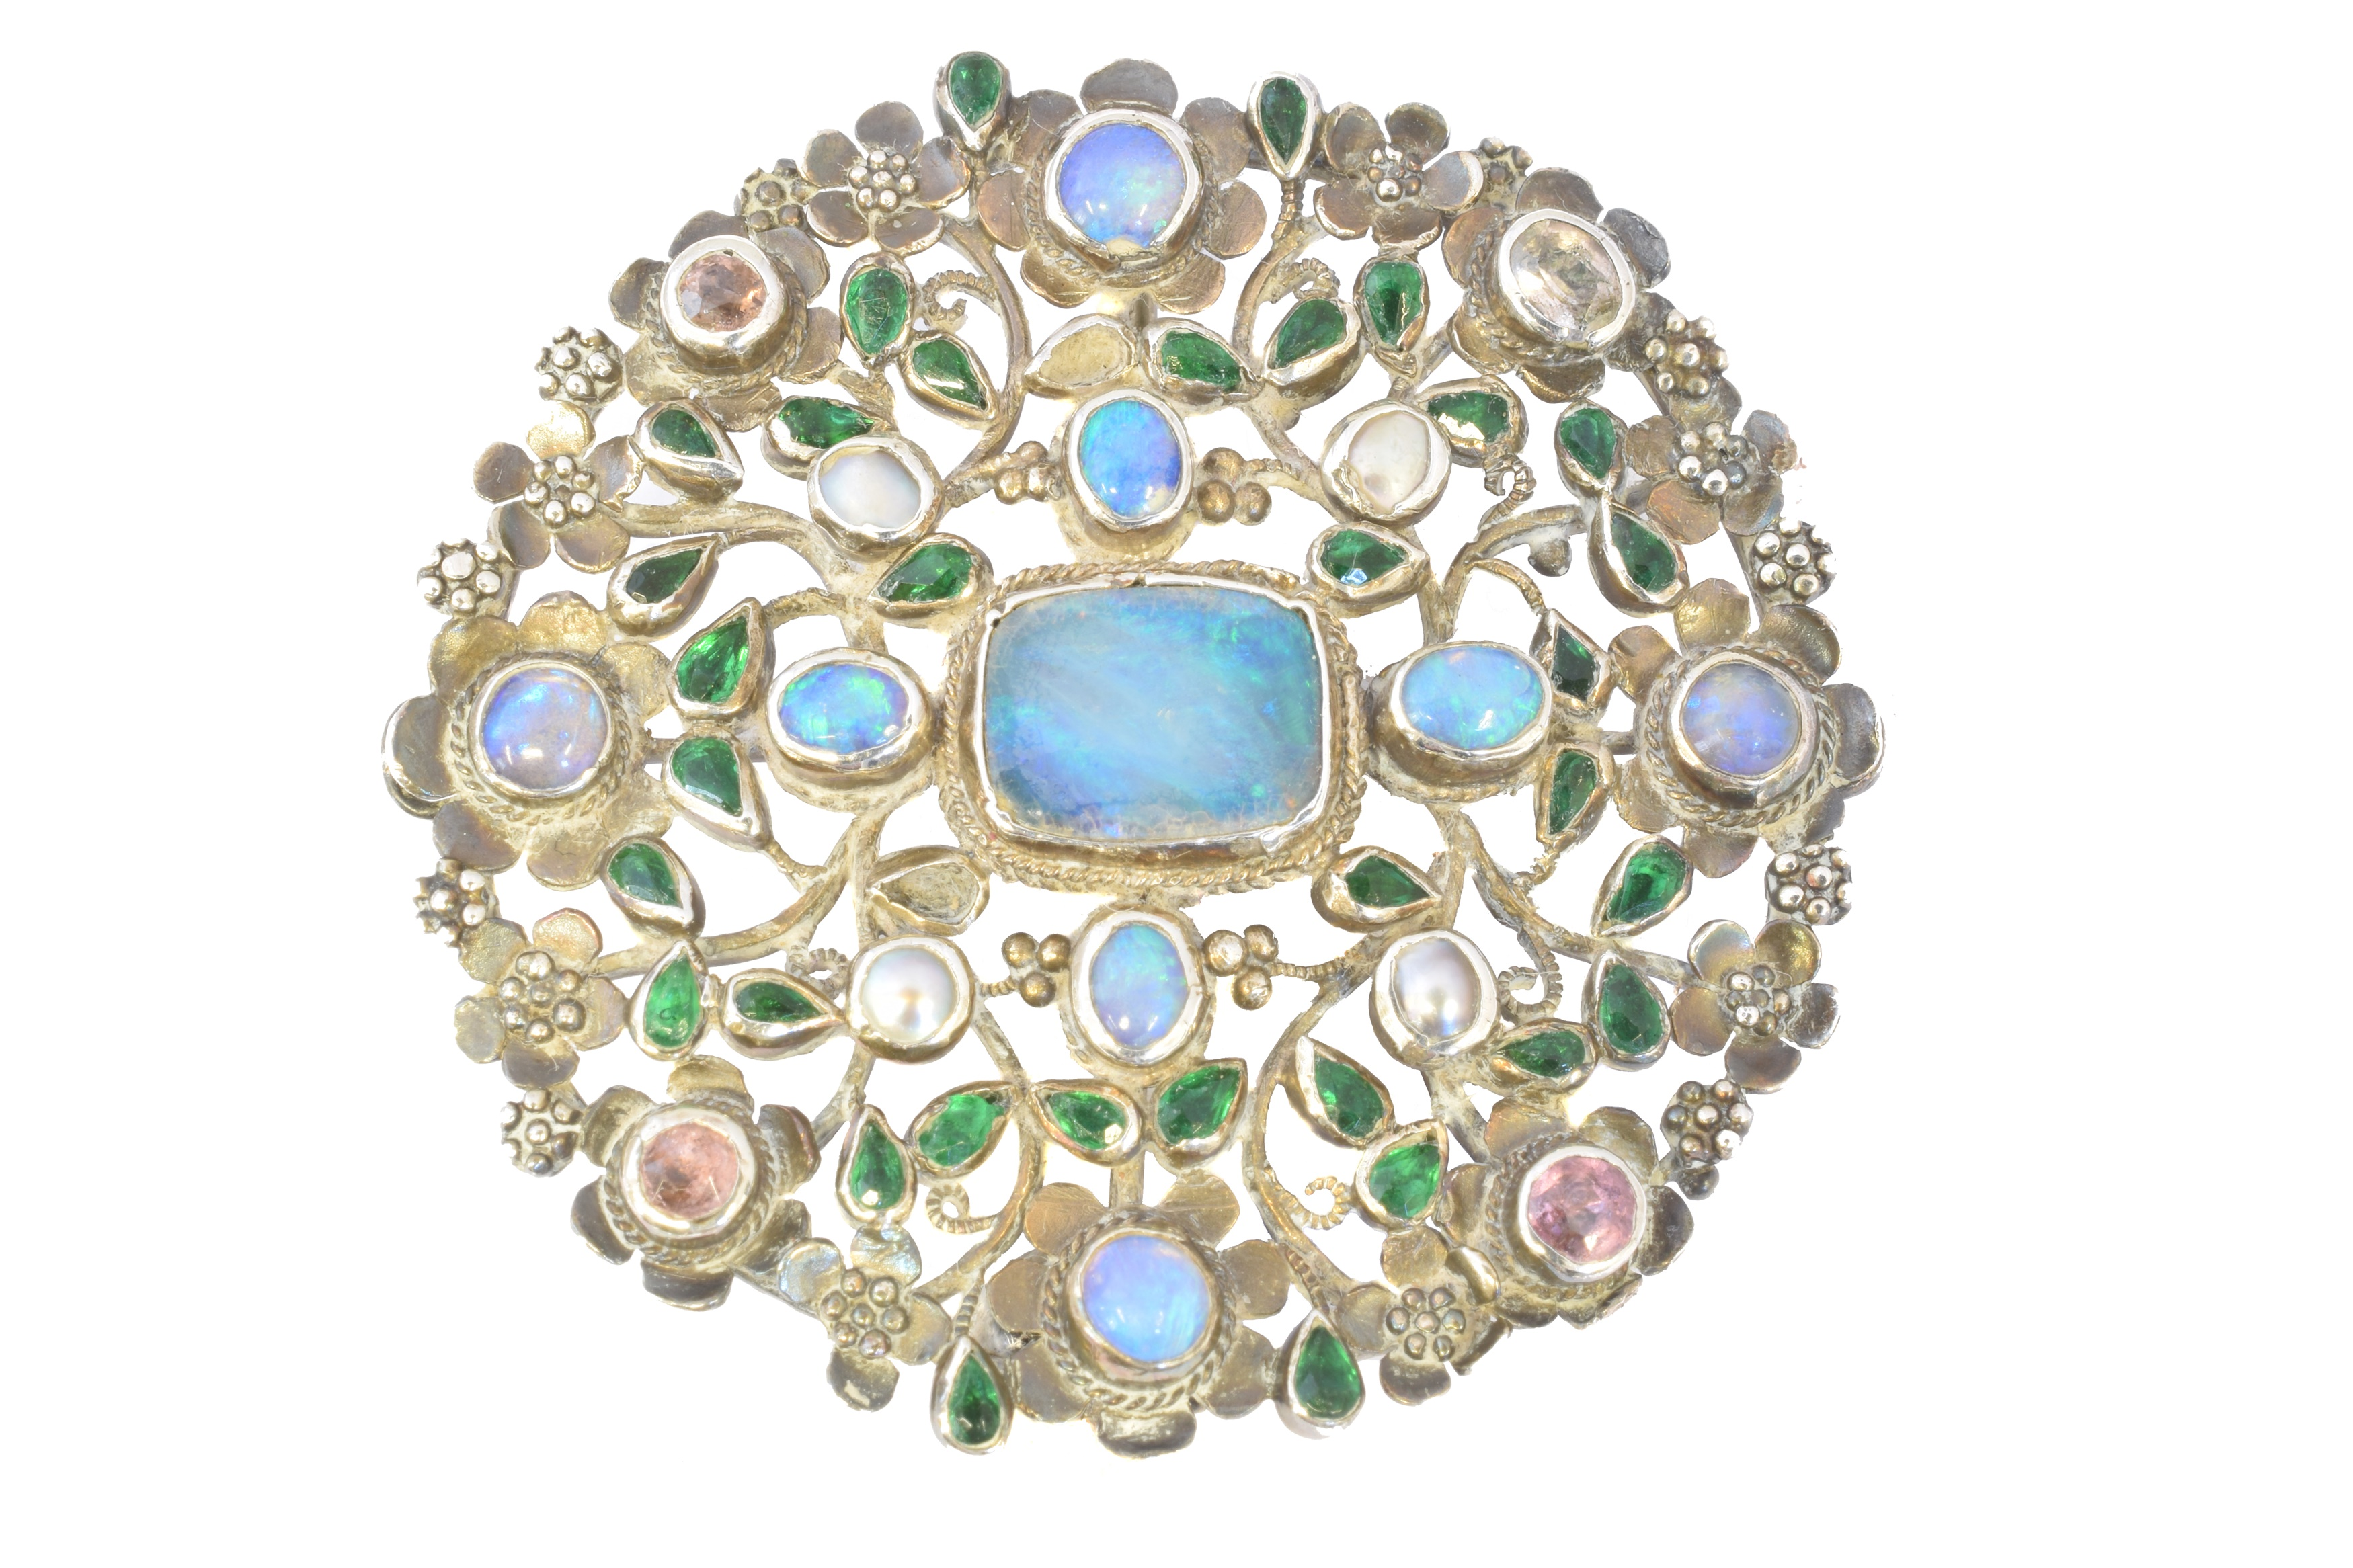 An Arts & Crafts opal and vari gem brooch attributed to Arthur and Georgie Gaskin